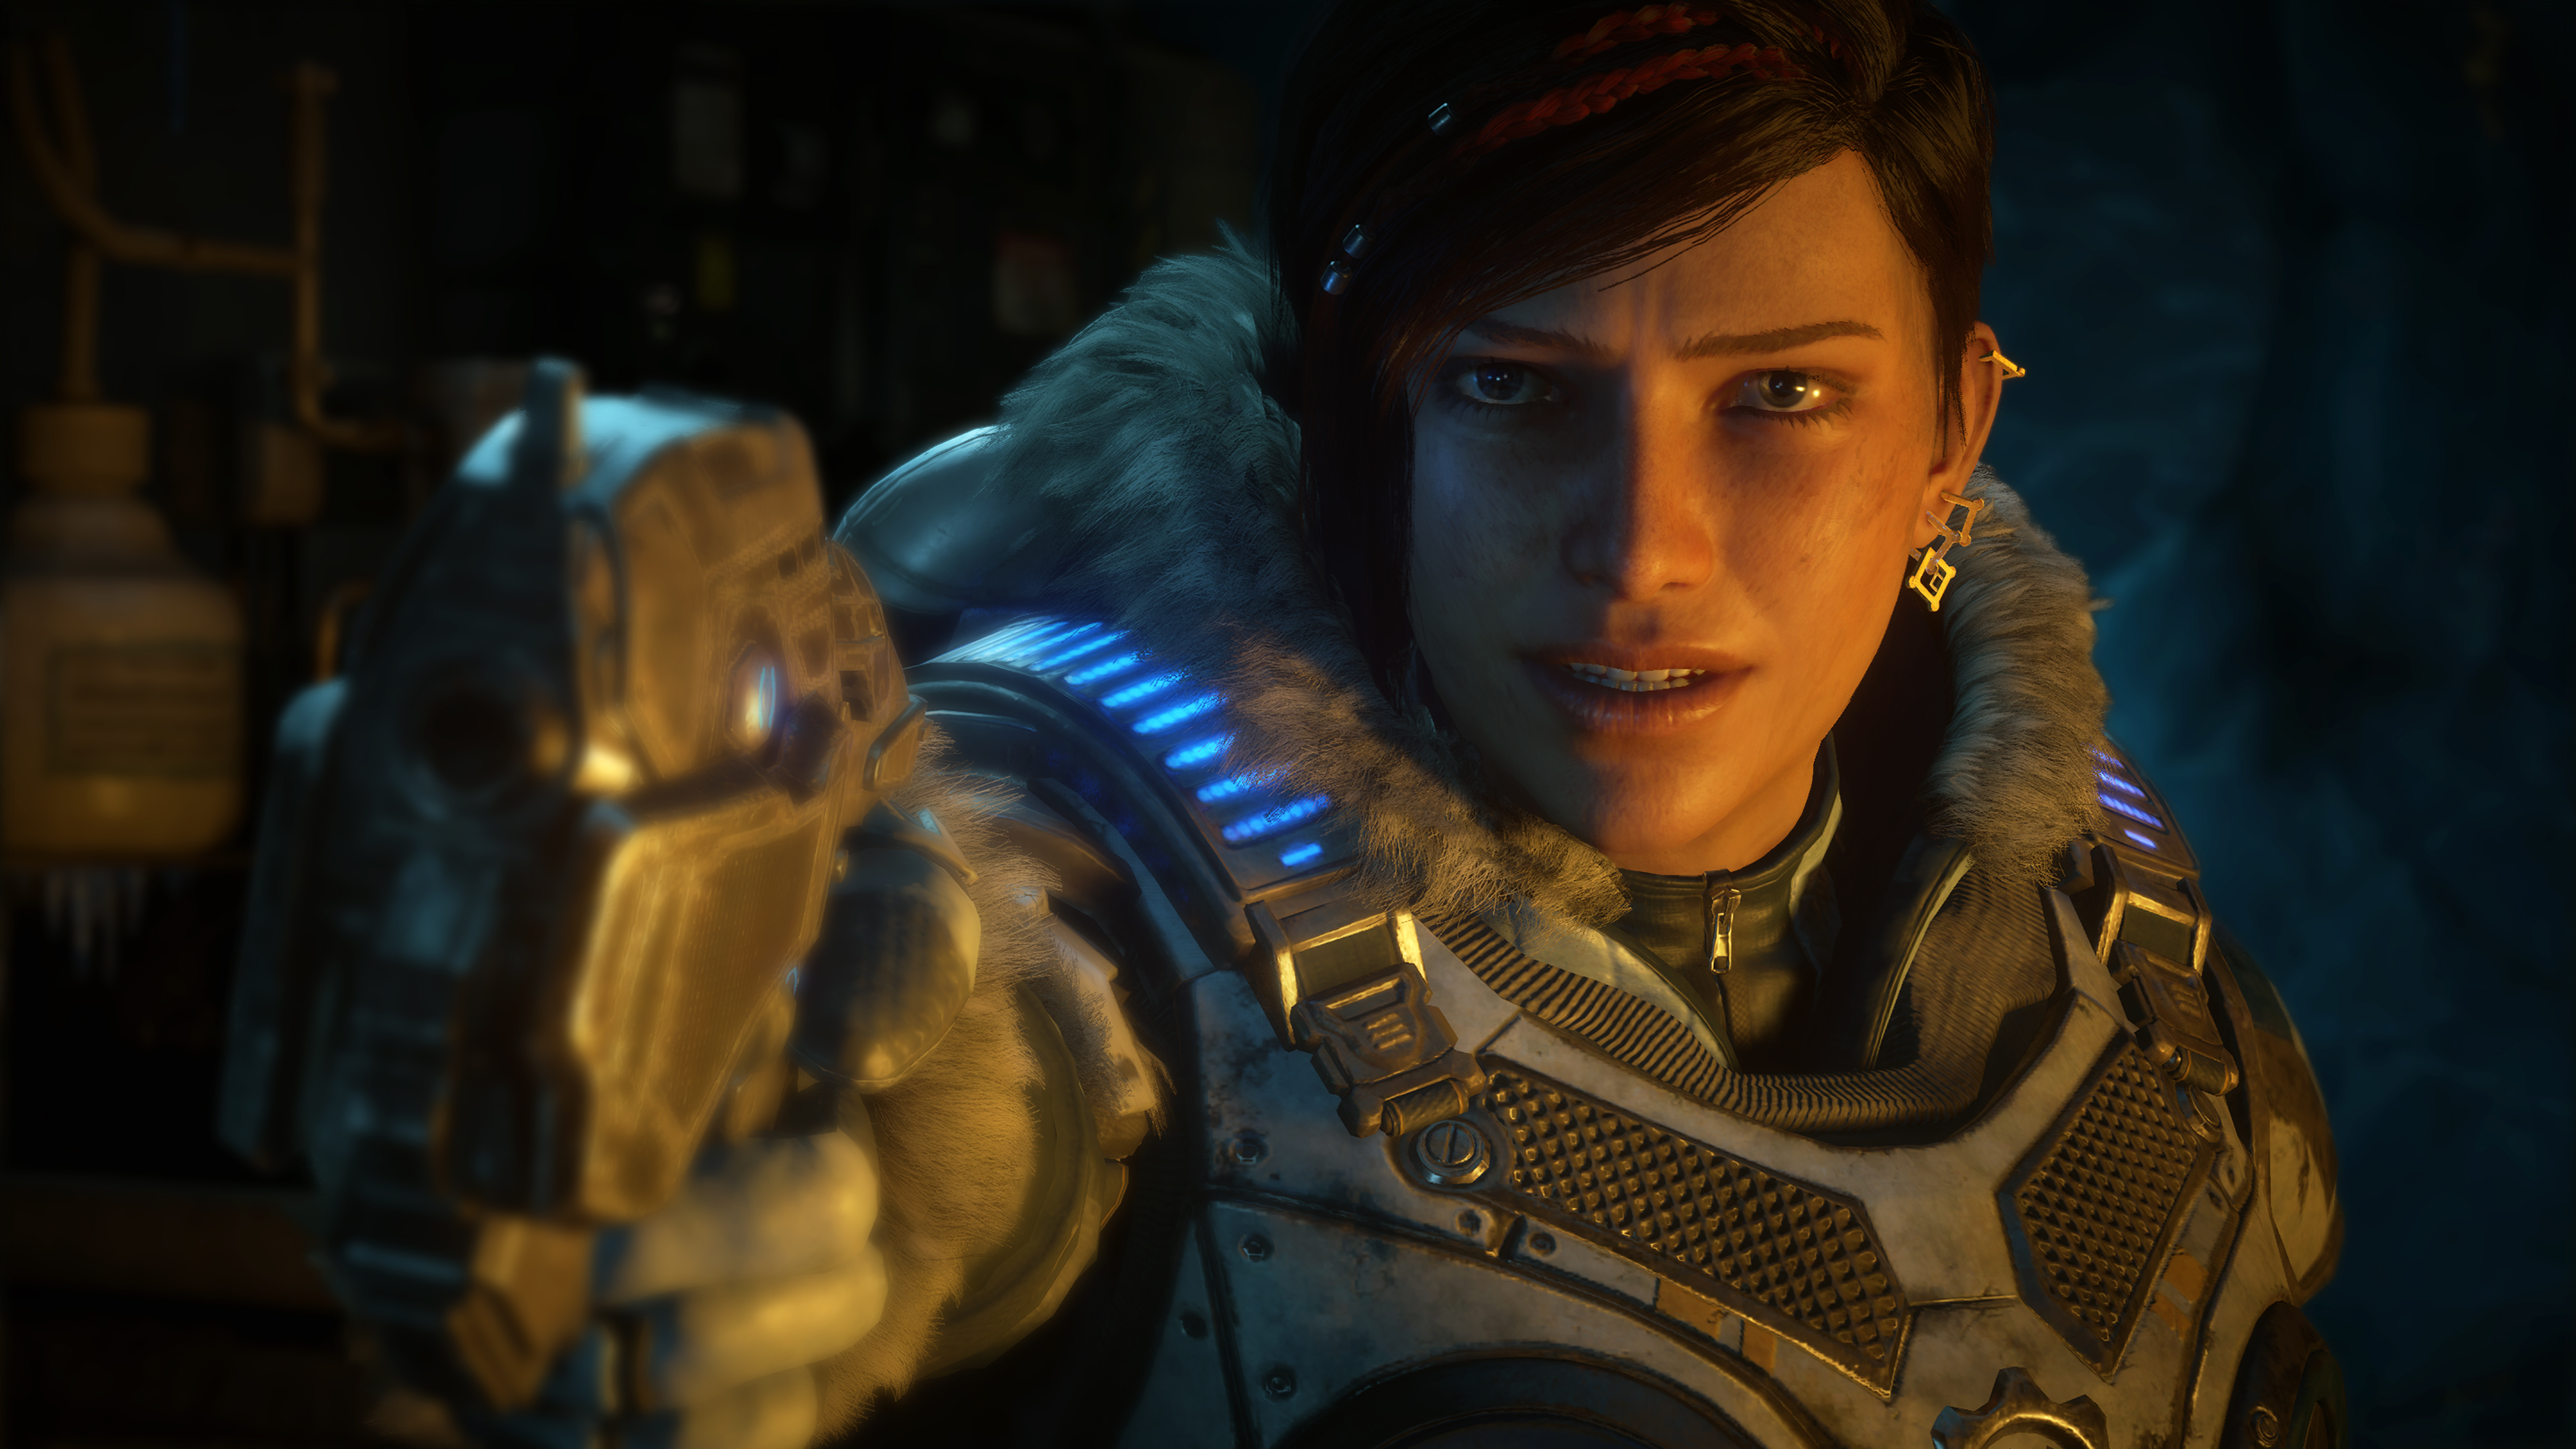 Treyarch working on fixing Call of Duty: Black Ops 4 emote